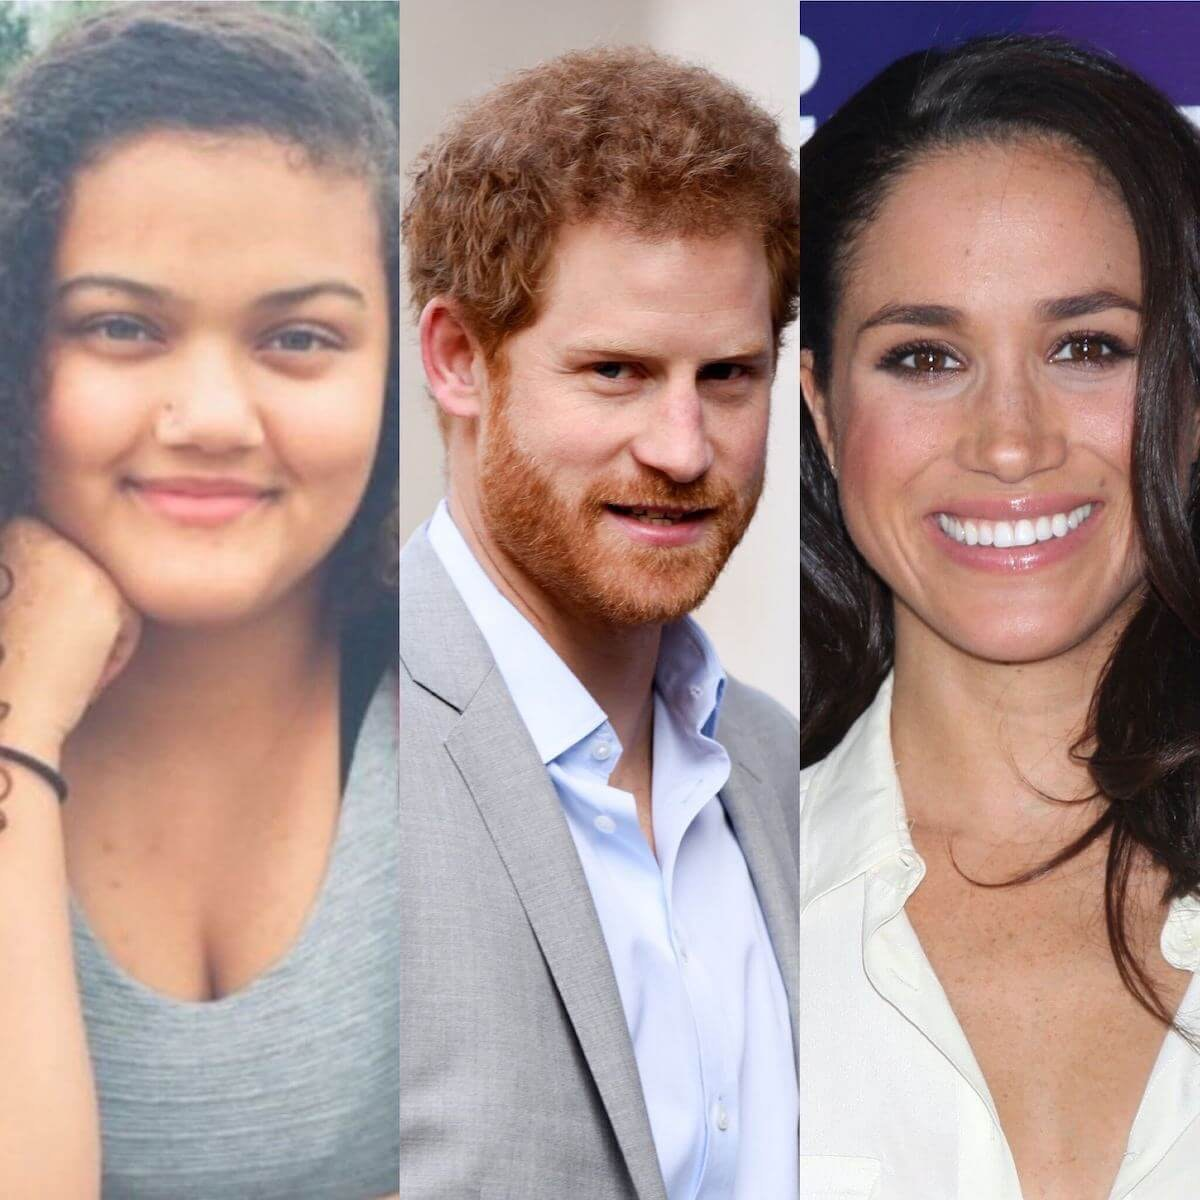 Prince Harry and Meghan Markle Reached Out To WI Hate Crime Victim